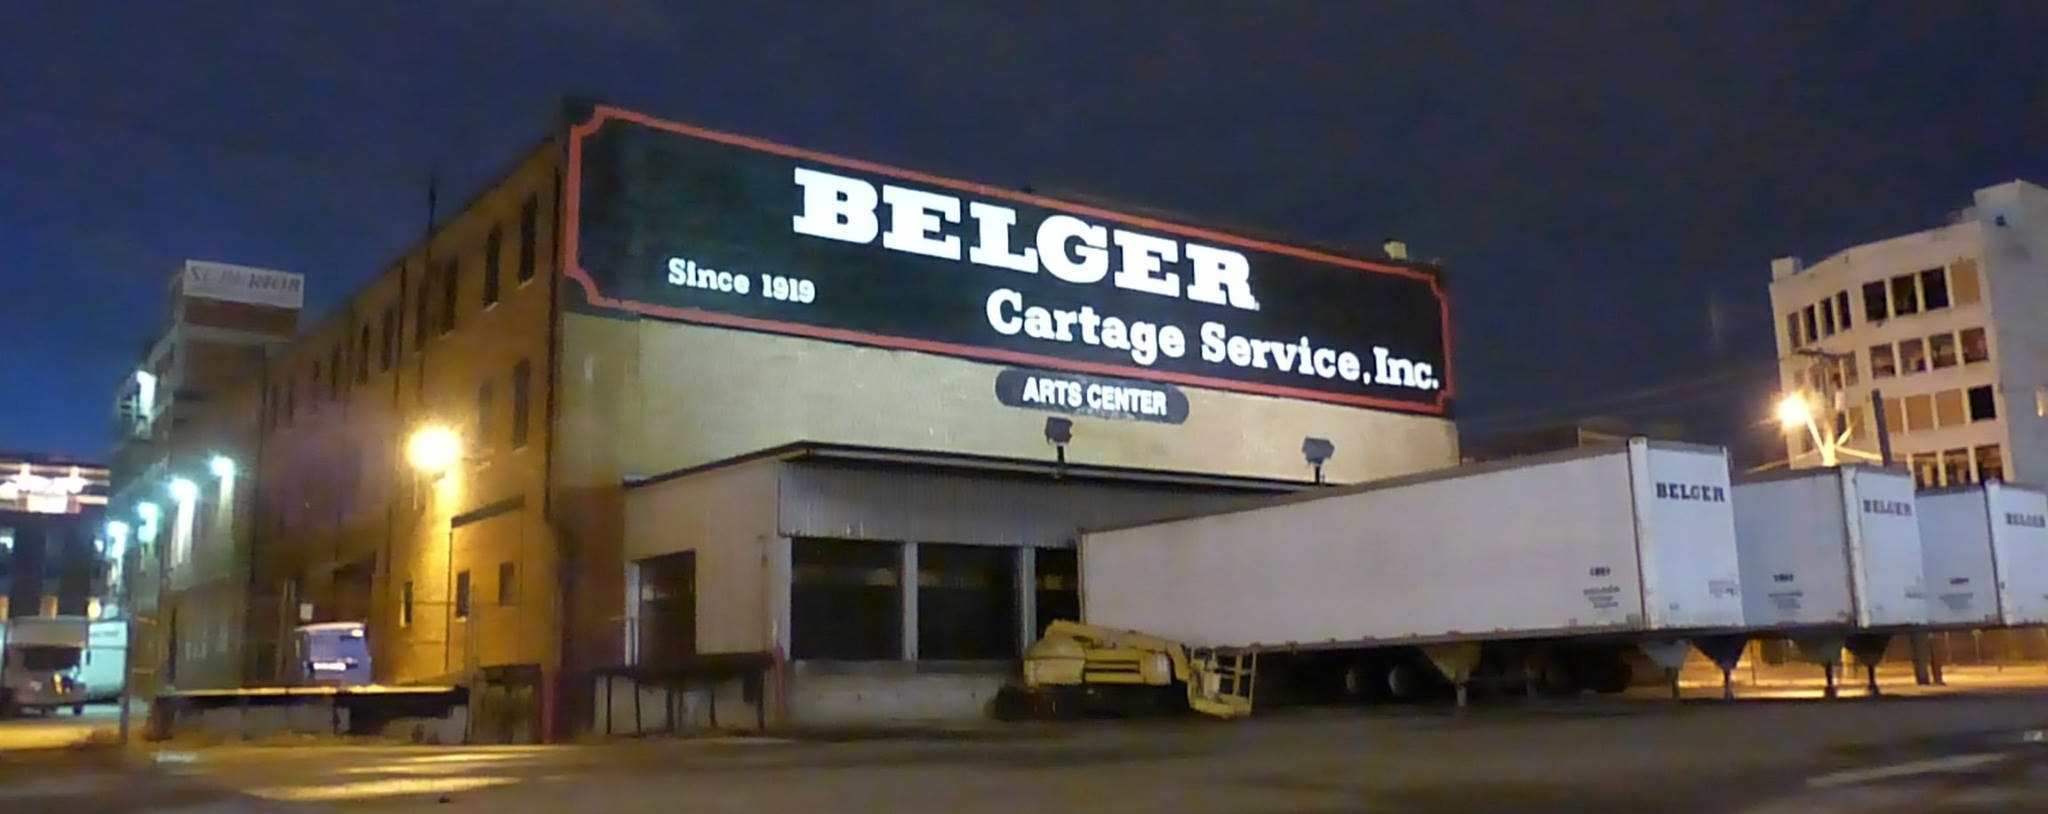 - the belger collection